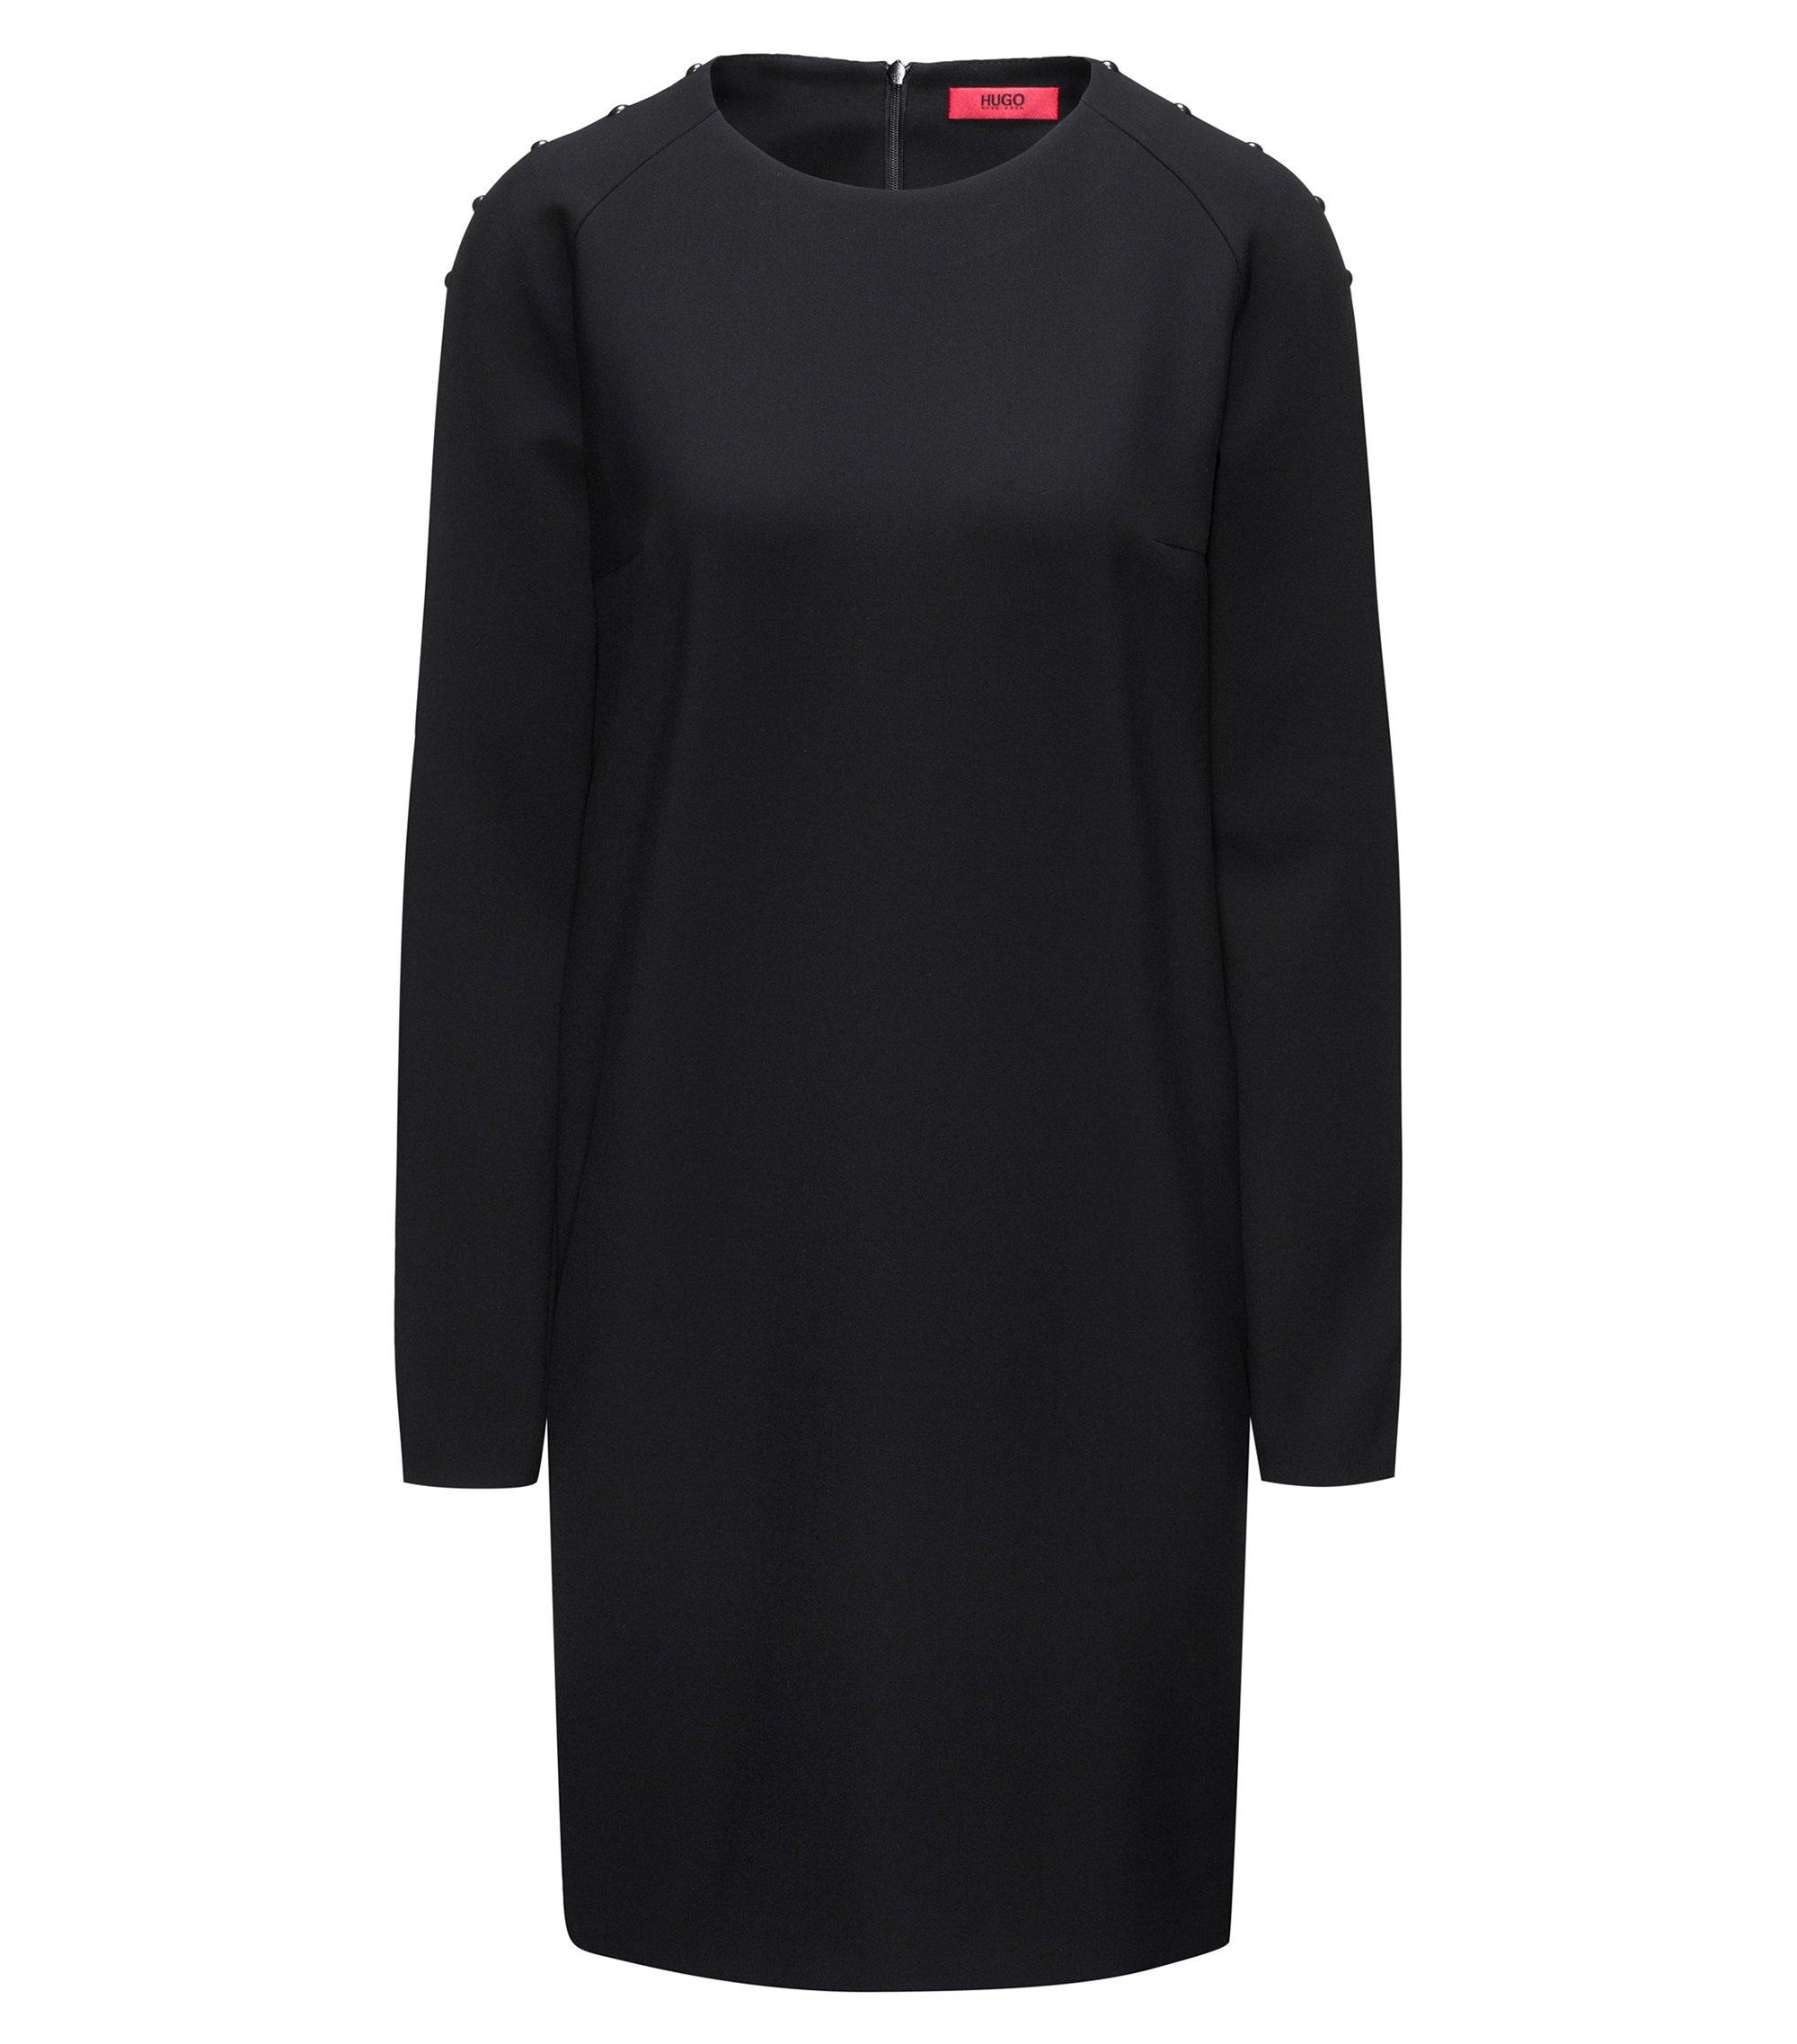 Long-sleeved dress with embellishments, Black